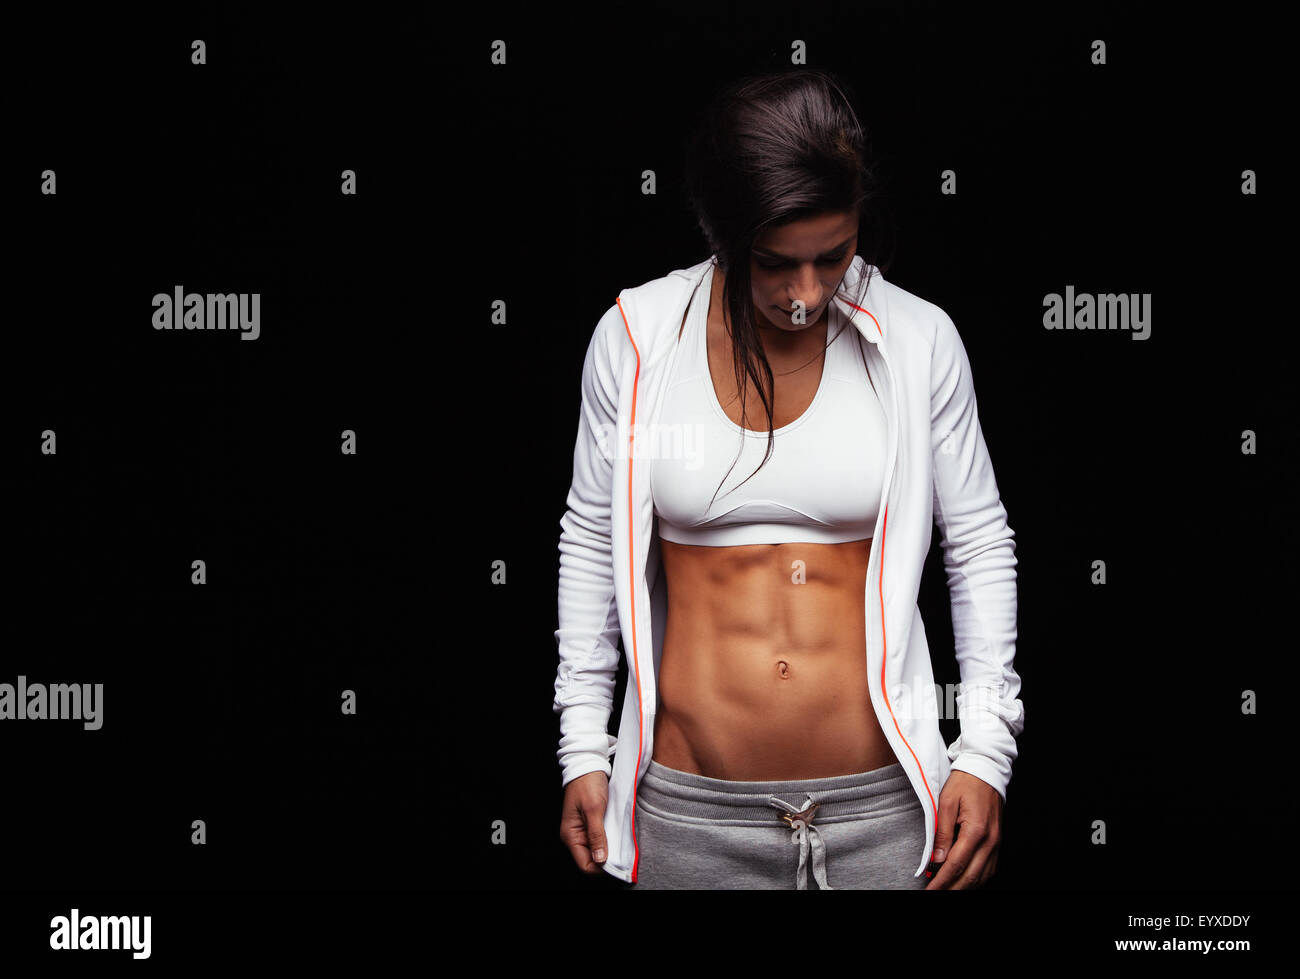 Portrait of a fit young woman with perfect abdomen muscles in sportswear. Muscular female athlete looking down on - Stock Image